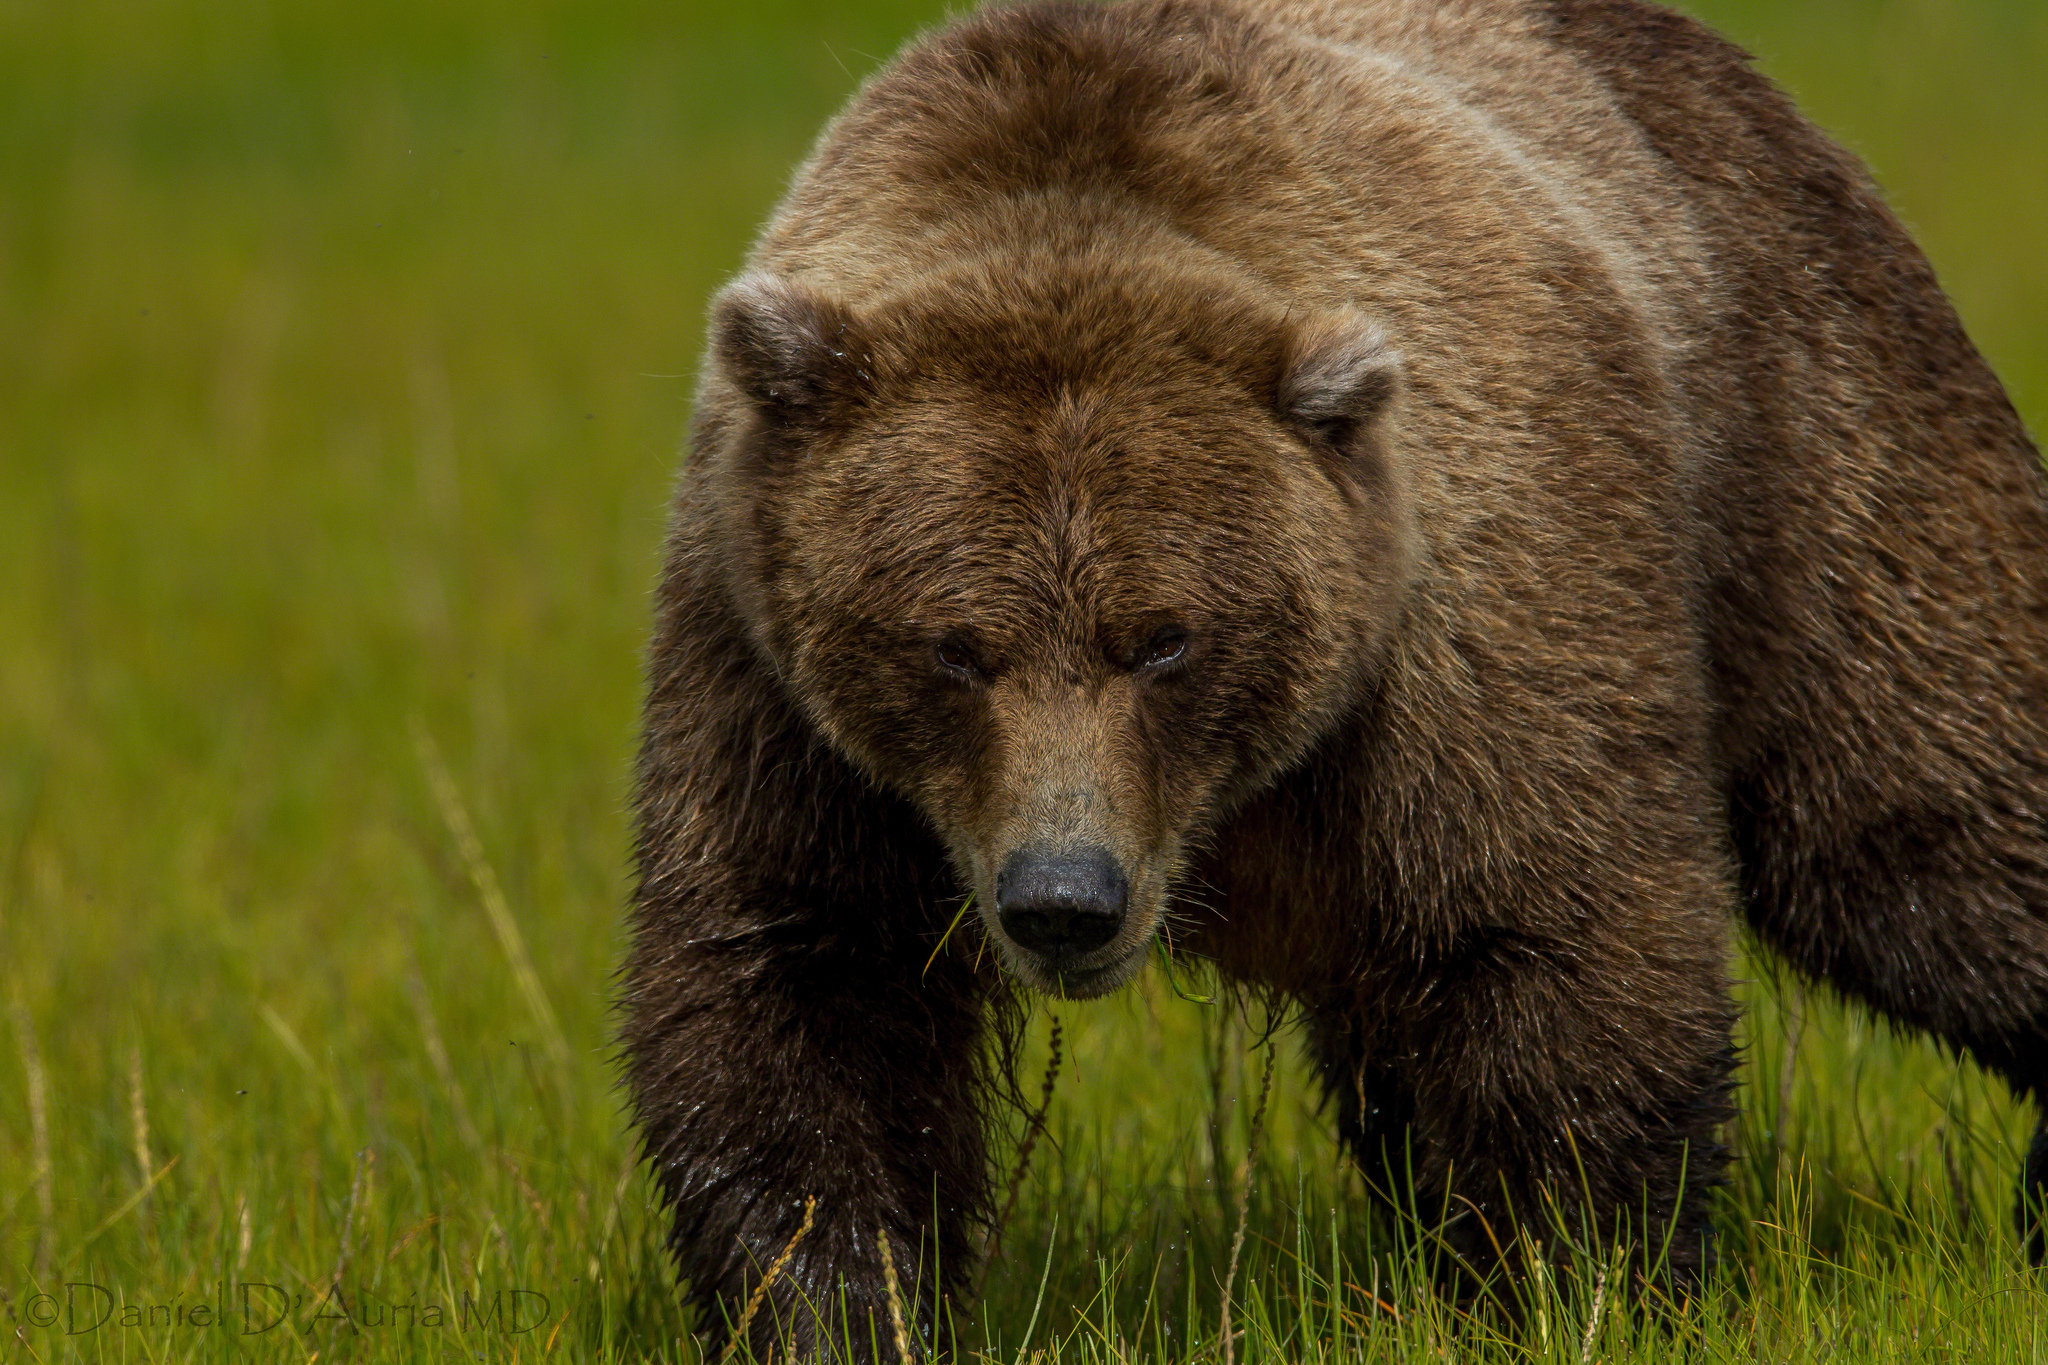 141607 download wallpaper Animals, Grass, Bear, Fat, Thick, Brown Bear screensavers and pictures for free